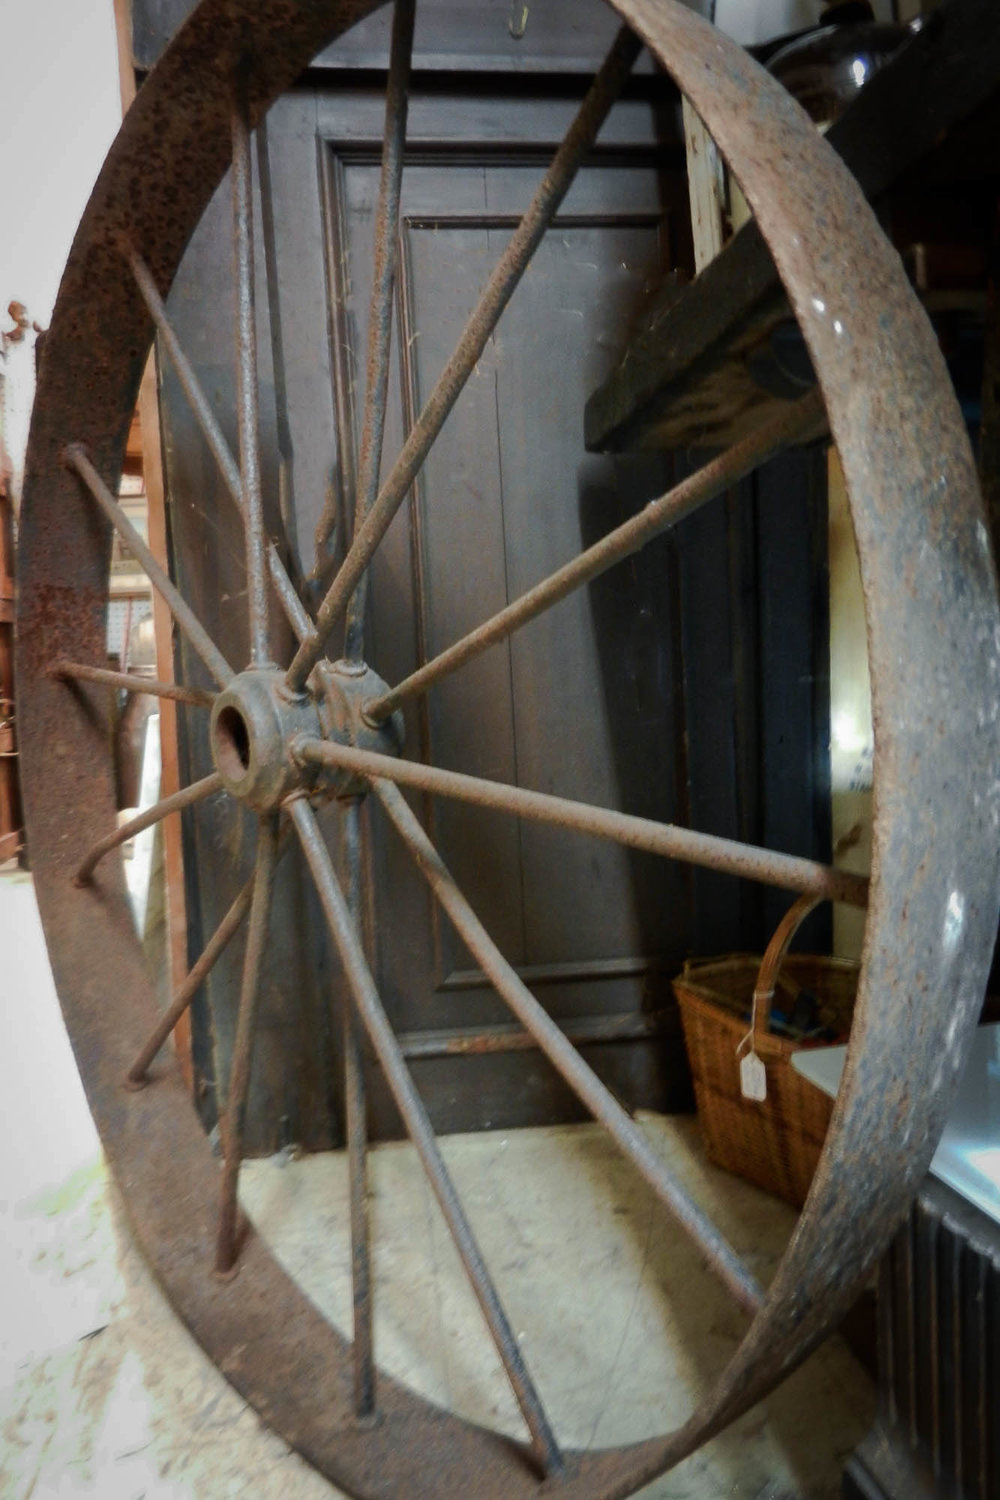 Antique Wagon Wheel | Refindings York, PA | Architectural Salvage & Antiques